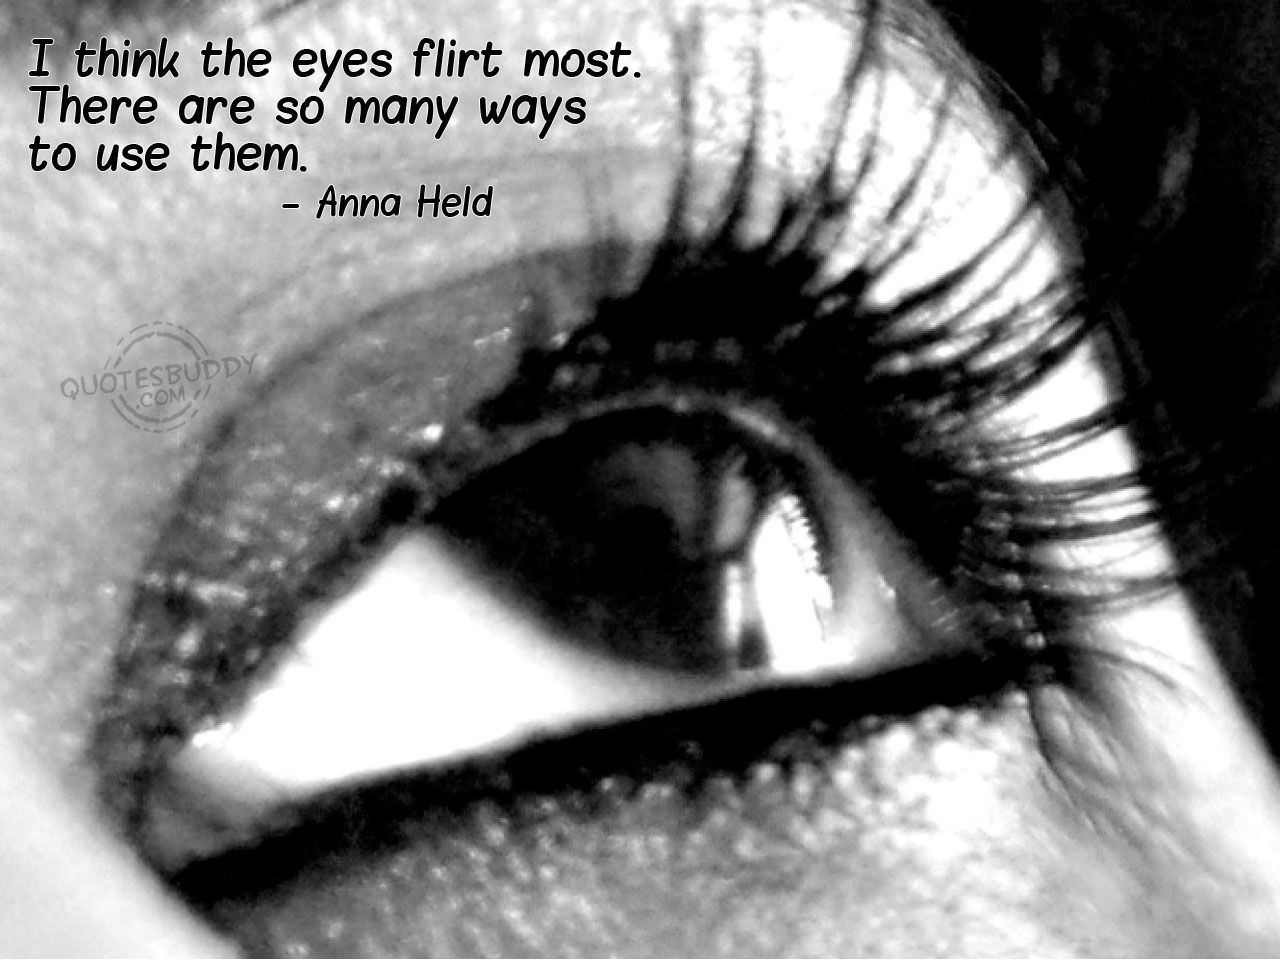 i think the eyes flirt most. There are many ways to use them   Quotes about eyes